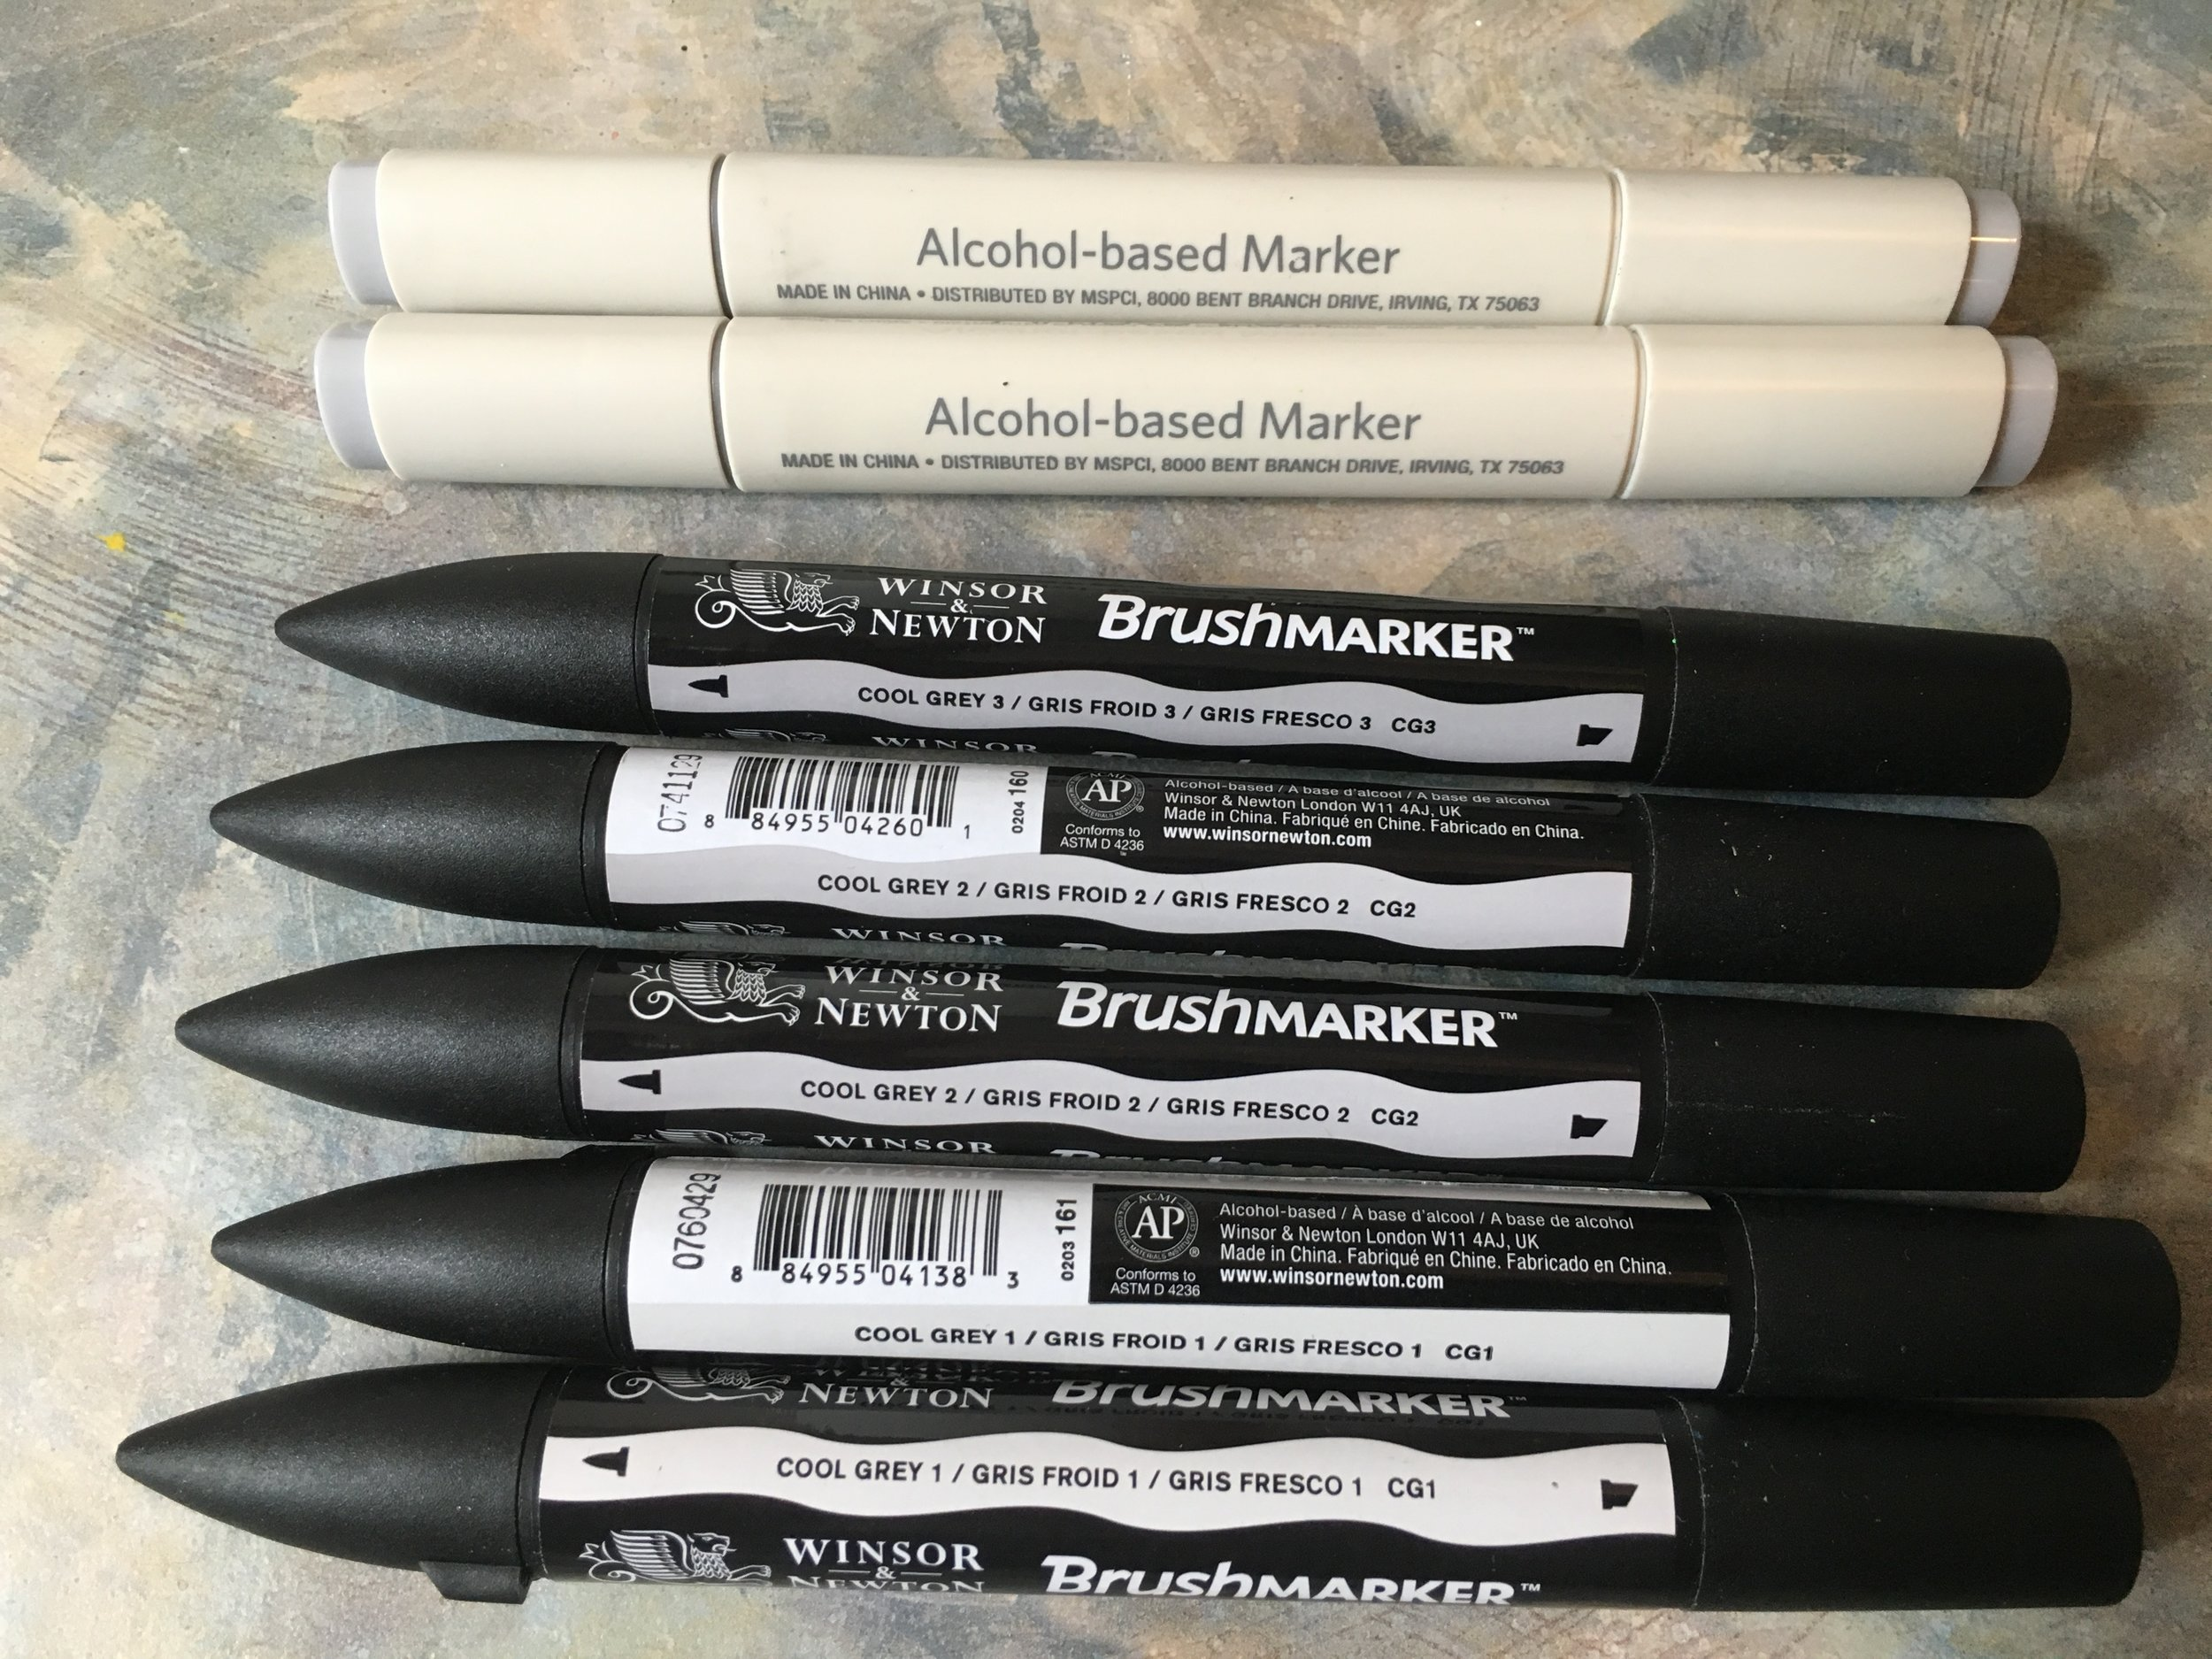 "These are my go to grays. The Windser & Newton Brush Markers are awesome, with consistent tones pen to pen, and excellent, flexible brush nibs for getting good, controlled thick to thin shading and volume into a drawing. Downside, they're not cheap, or refillable, and as I use the cool gray 01 and 02 the most, my burn rate is about a pen every couple weeks. A LOT of artists prefer Copic markers, and if you have the budget or work for a company that'll cover your costs, Copic is definitely the industry standard, at least on the west coast and in Japan. I find them over priced and have little desire to refill anything, so my loss, i guess. A lot of folks also like Prisma-Color, and I have a heap of those for certain colour ranges. For cool gray, though, these have me happy.  The other two are an example of alcohol based markers, which smell more and deliver a deeper, often richer tone. These two are from Artist Loft, so a bit cheaper from Michaels, though similar to Copic inks, they won't bleed or discolour if I add water colours over top of them. i tend to use these and a few alcohol based colours - like my Chartpak AD Marker ""Brick Red"" tat's been my go to for a base rust tone for years - when I want to add some darker tone that compliments the gray scale range with a bit of bolder umph."